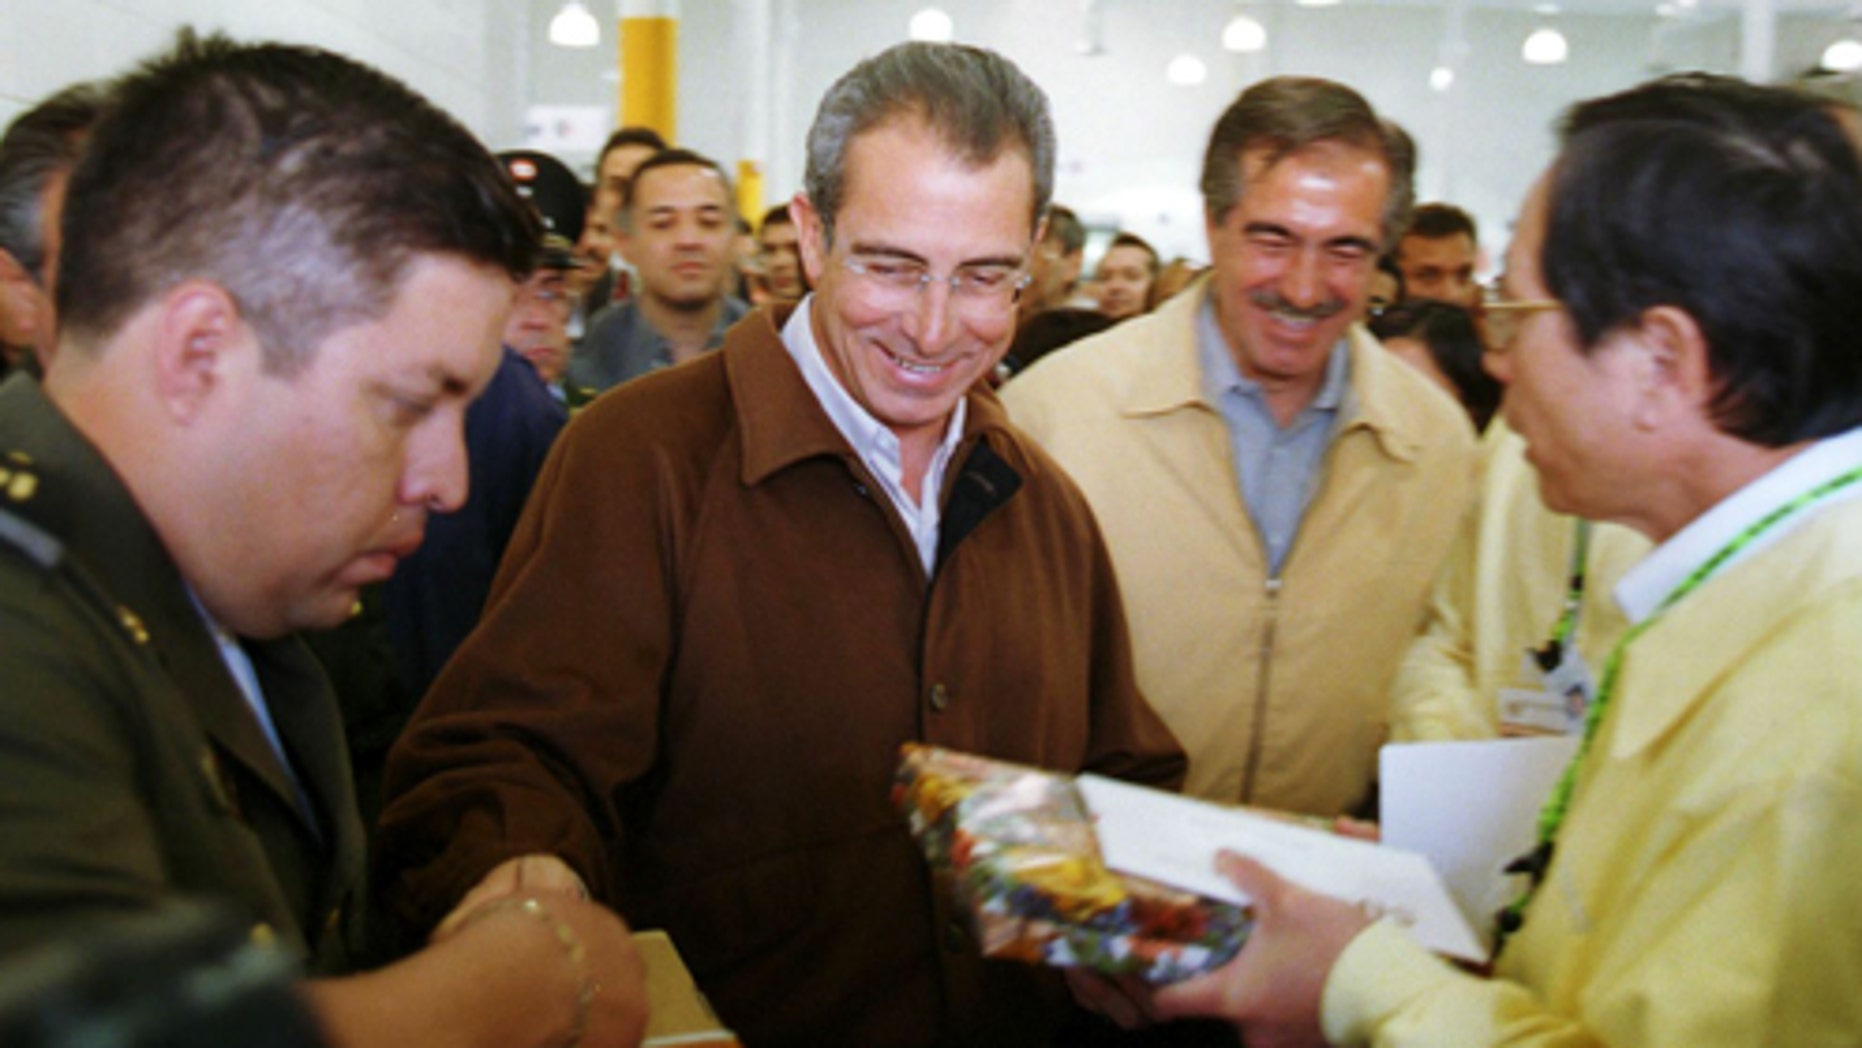 Mexico's president Ernesto Zedillo (in brown jacket) and Chihuahua state governor, Patricio Martinez, (to right) are given gifts as they leave the new Acer maquiladora in Ciudad Juarez, Mexico February 23, 2000. (Photo by Joe Raedle)